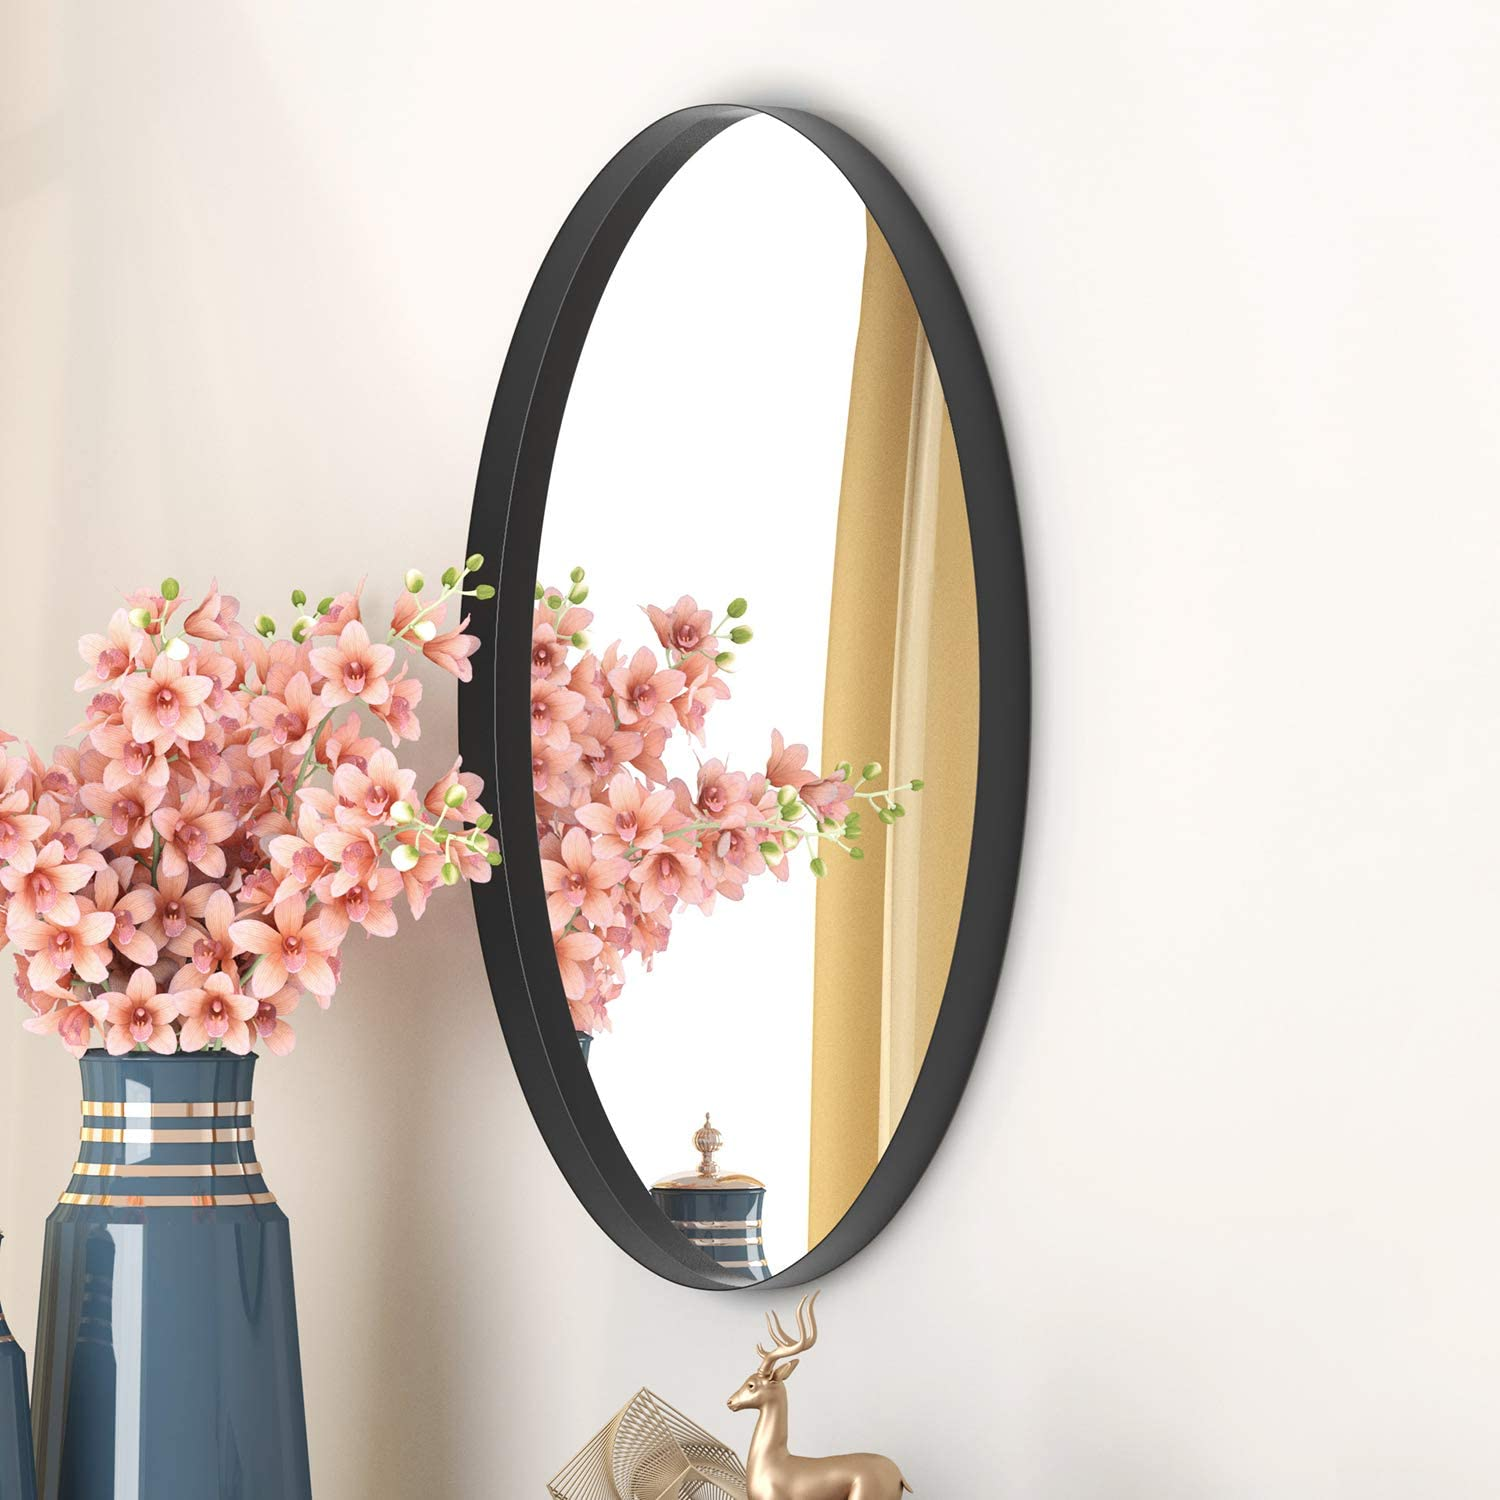 Nxhome Oval Bathroom Decorative Wall Mirror Living Room Entryway Wall Mounted 20x28in Black Clean Decor Stainless Steel Framed Mirrors For Vanity Bedroom Wall Mounted Mirrors